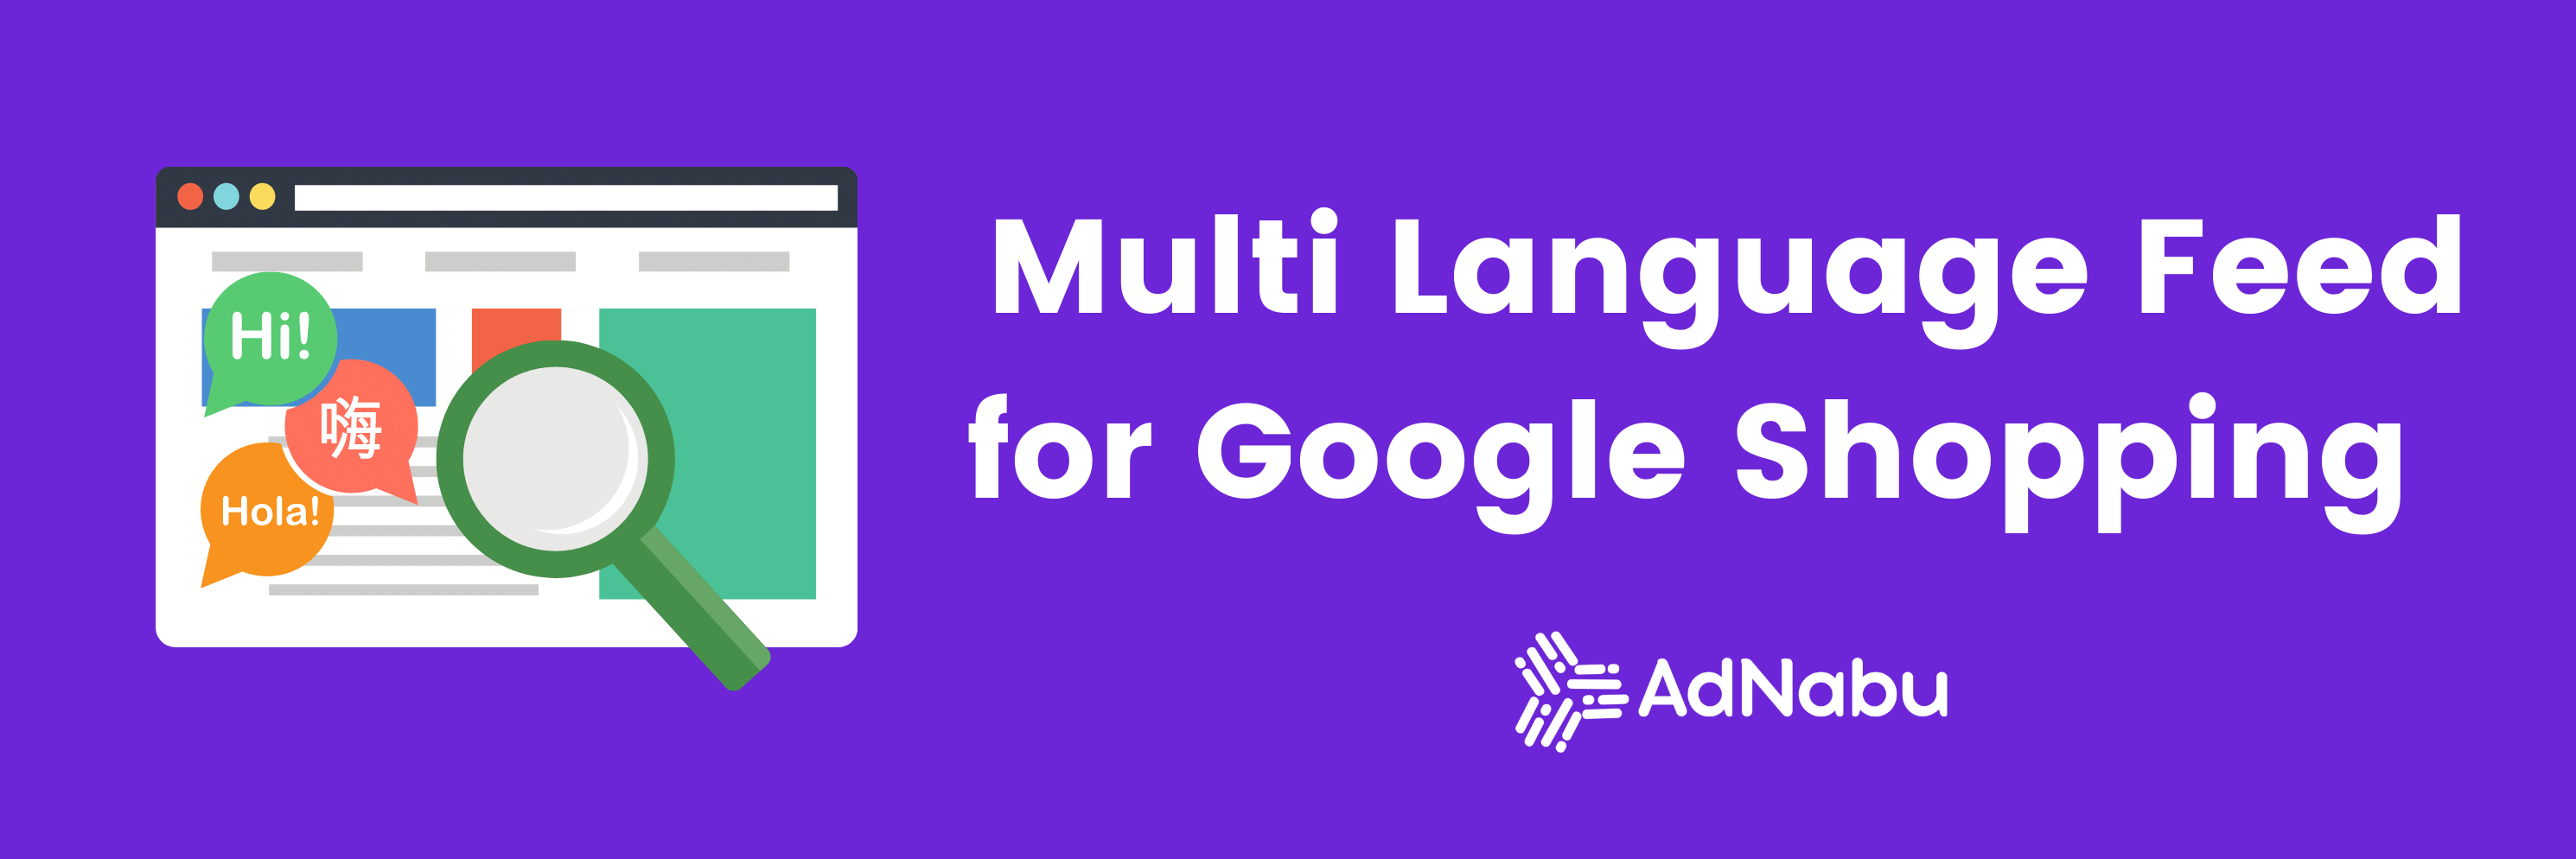 Multi language feed for google shopping